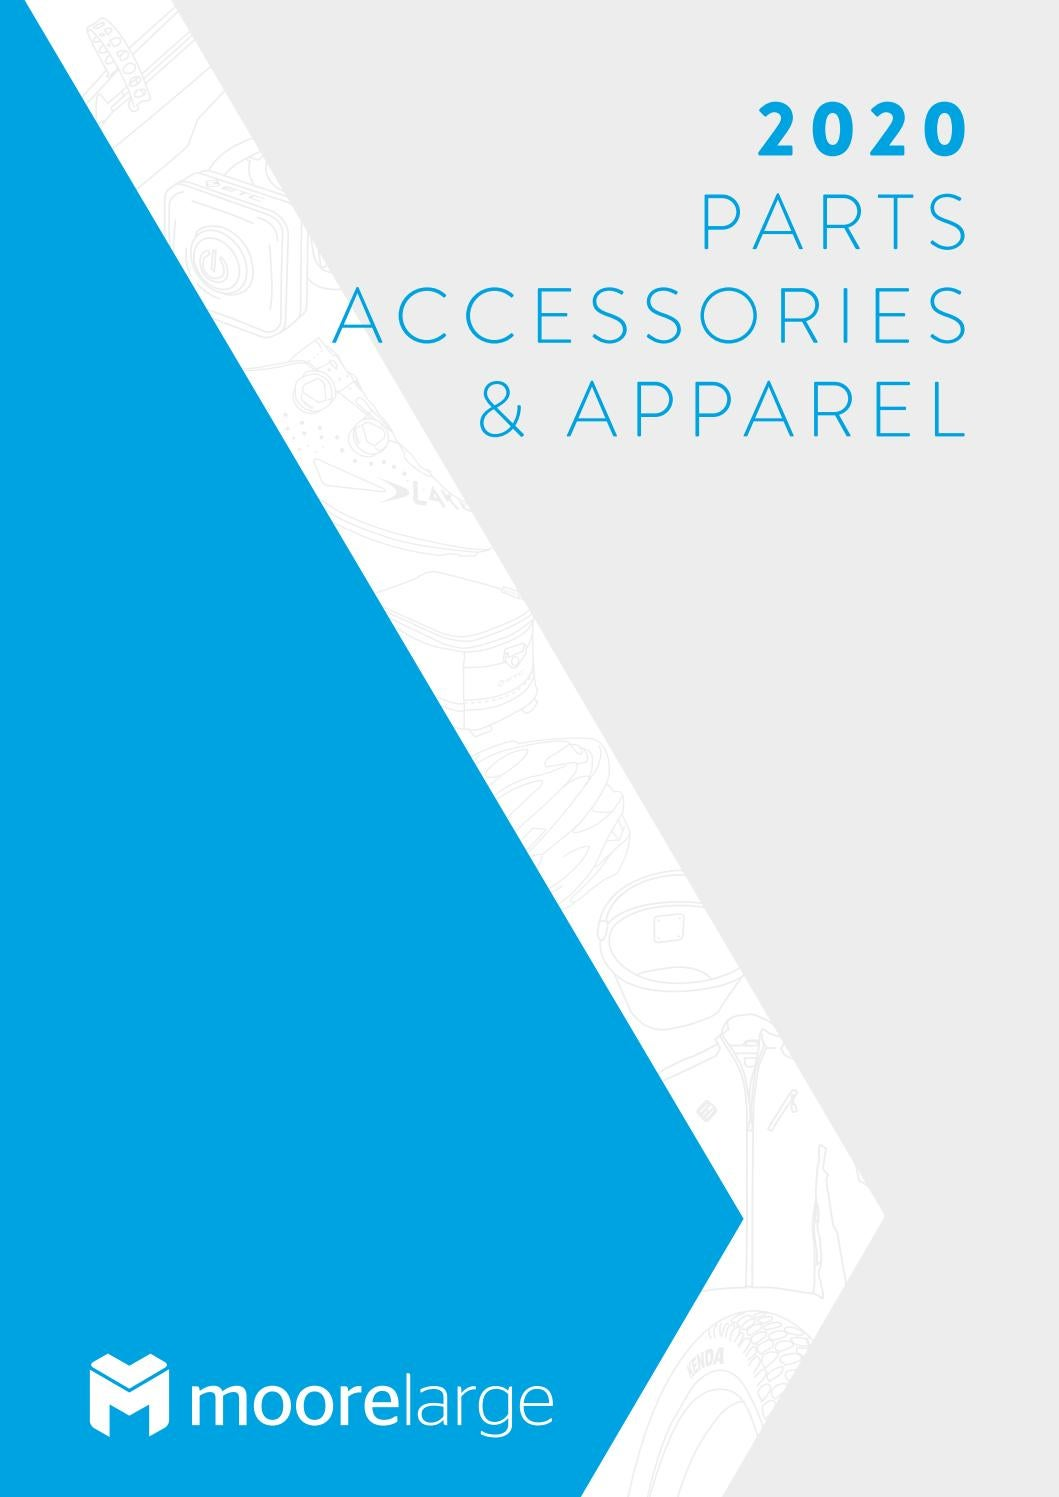 Moore Large 2020 Parts Accessories Apparel Catalogue By Moore